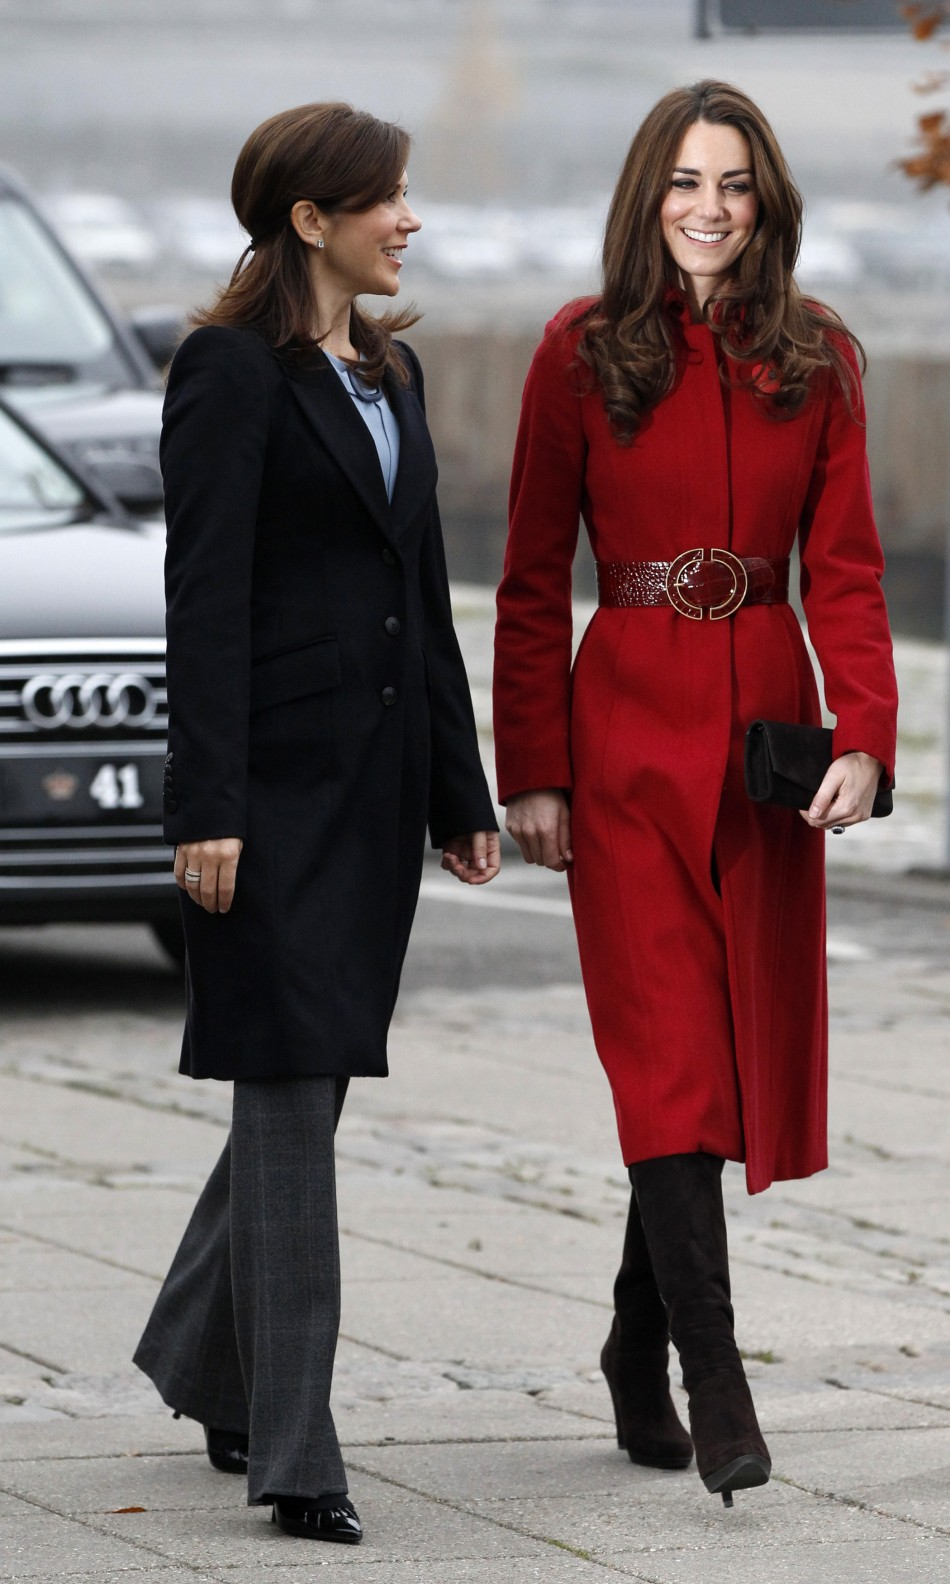 Kate Middleton's Copenhagen Visit